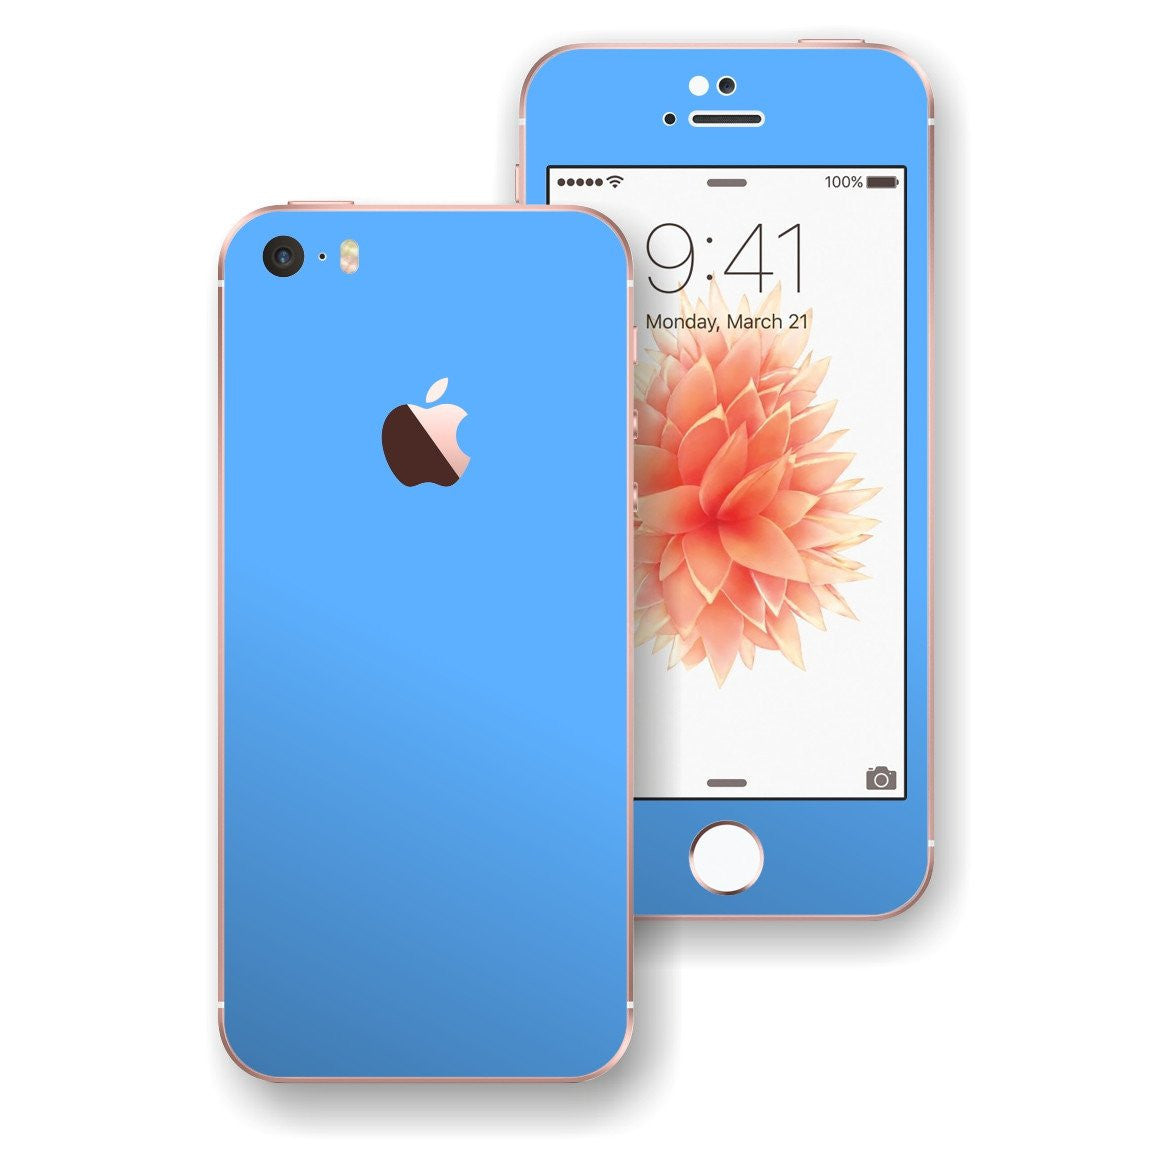 iPhone SE MATT Matte BLUE Skin Wrap Decal Sticker Cover Protector by EasySkinz